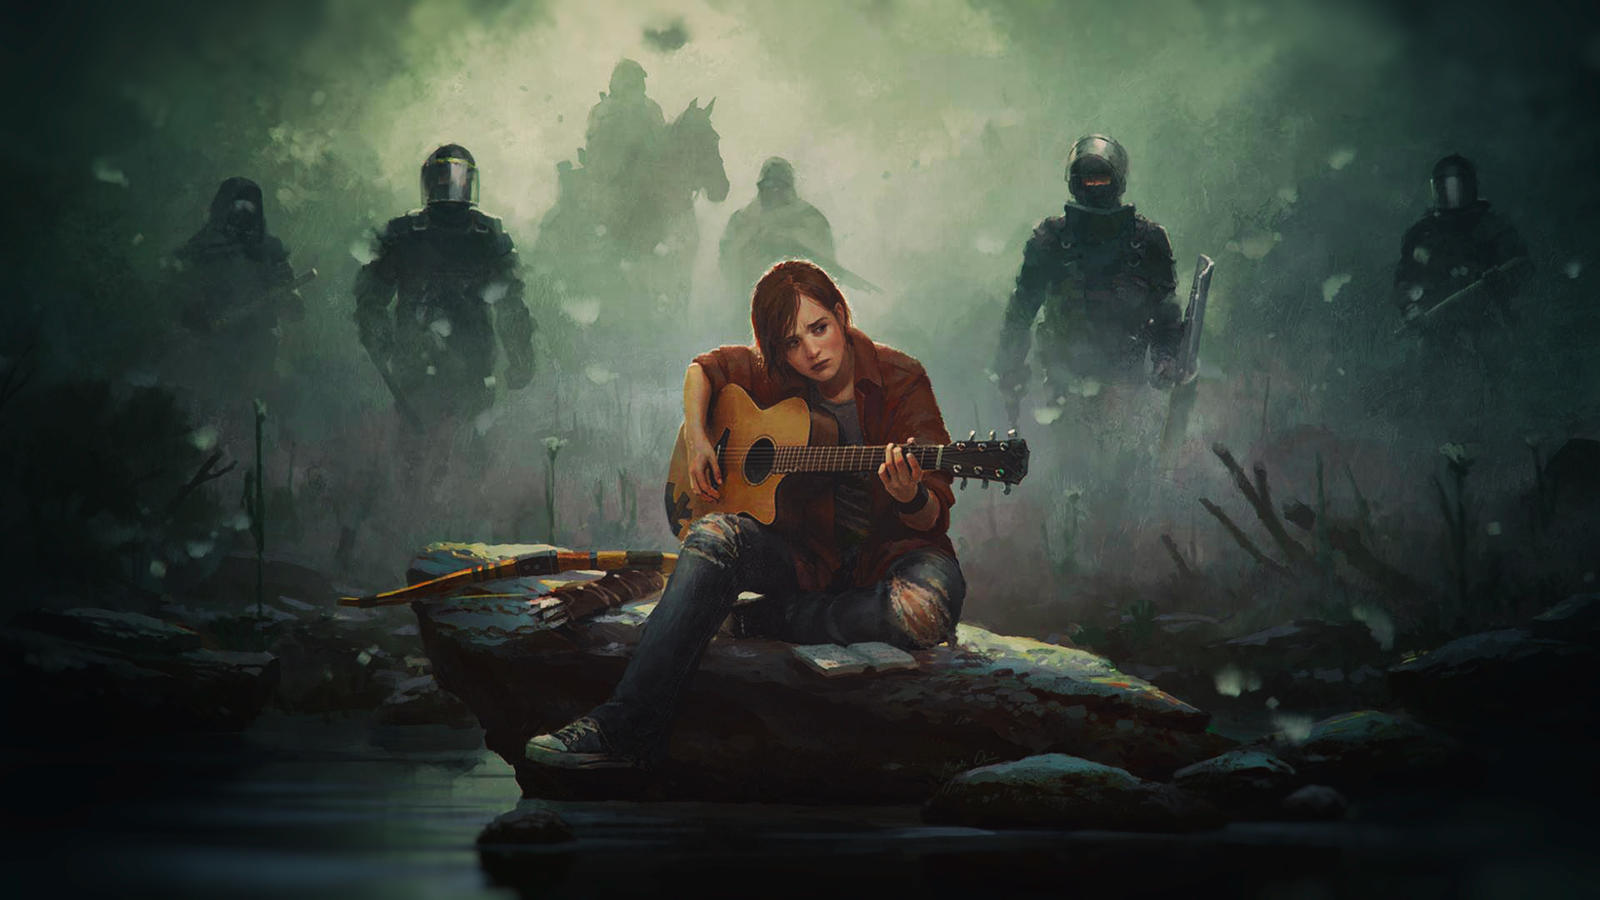 Ellie The Last Of Us Wallpaper: Moved To /r/TheLastofUs